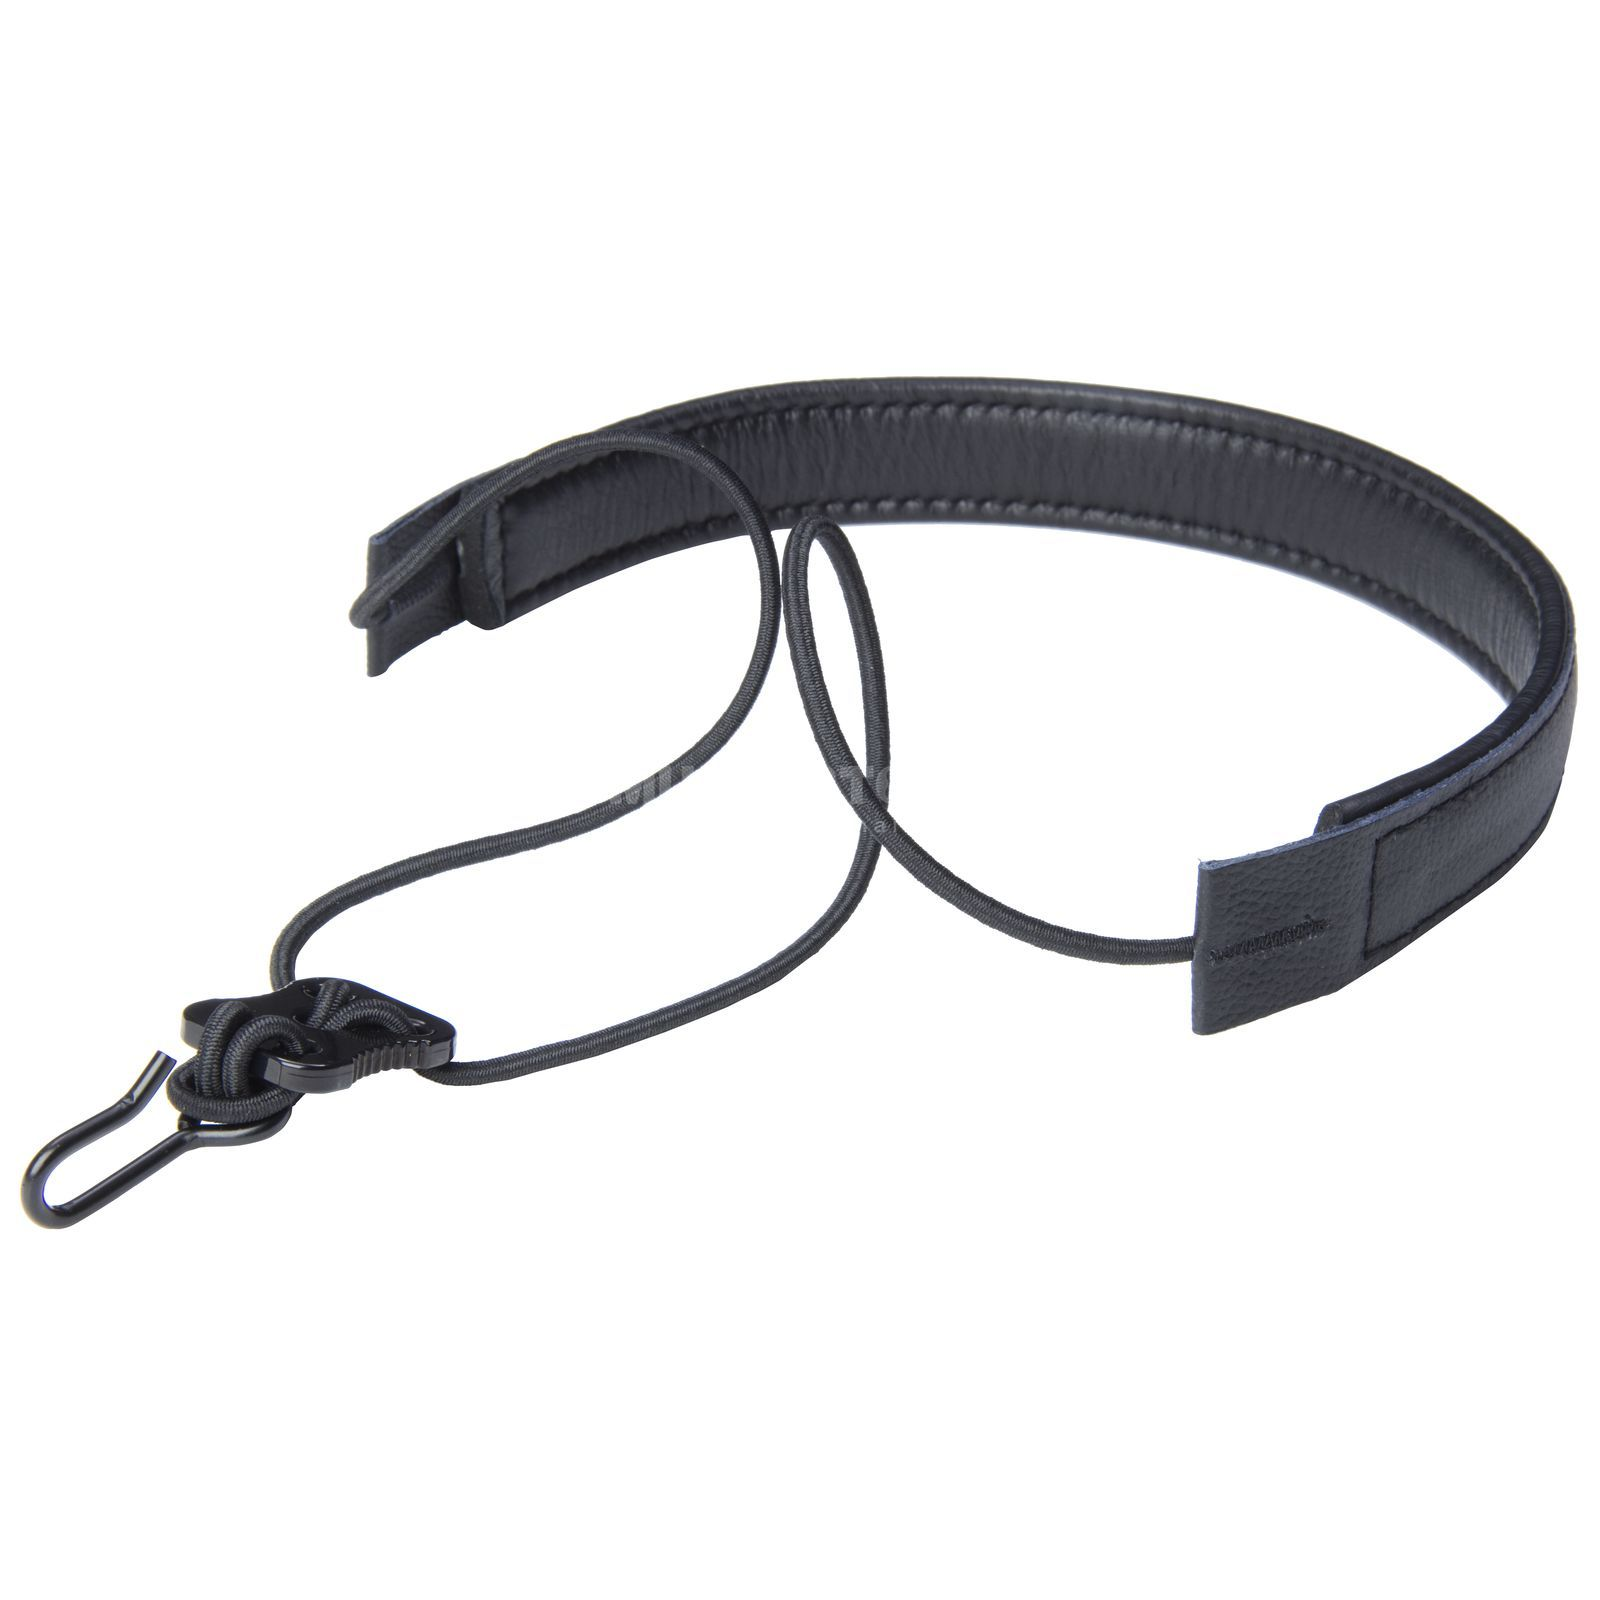 Monzani Elastic Strap f. Clarinet Cow Leather, Black Изображение товара